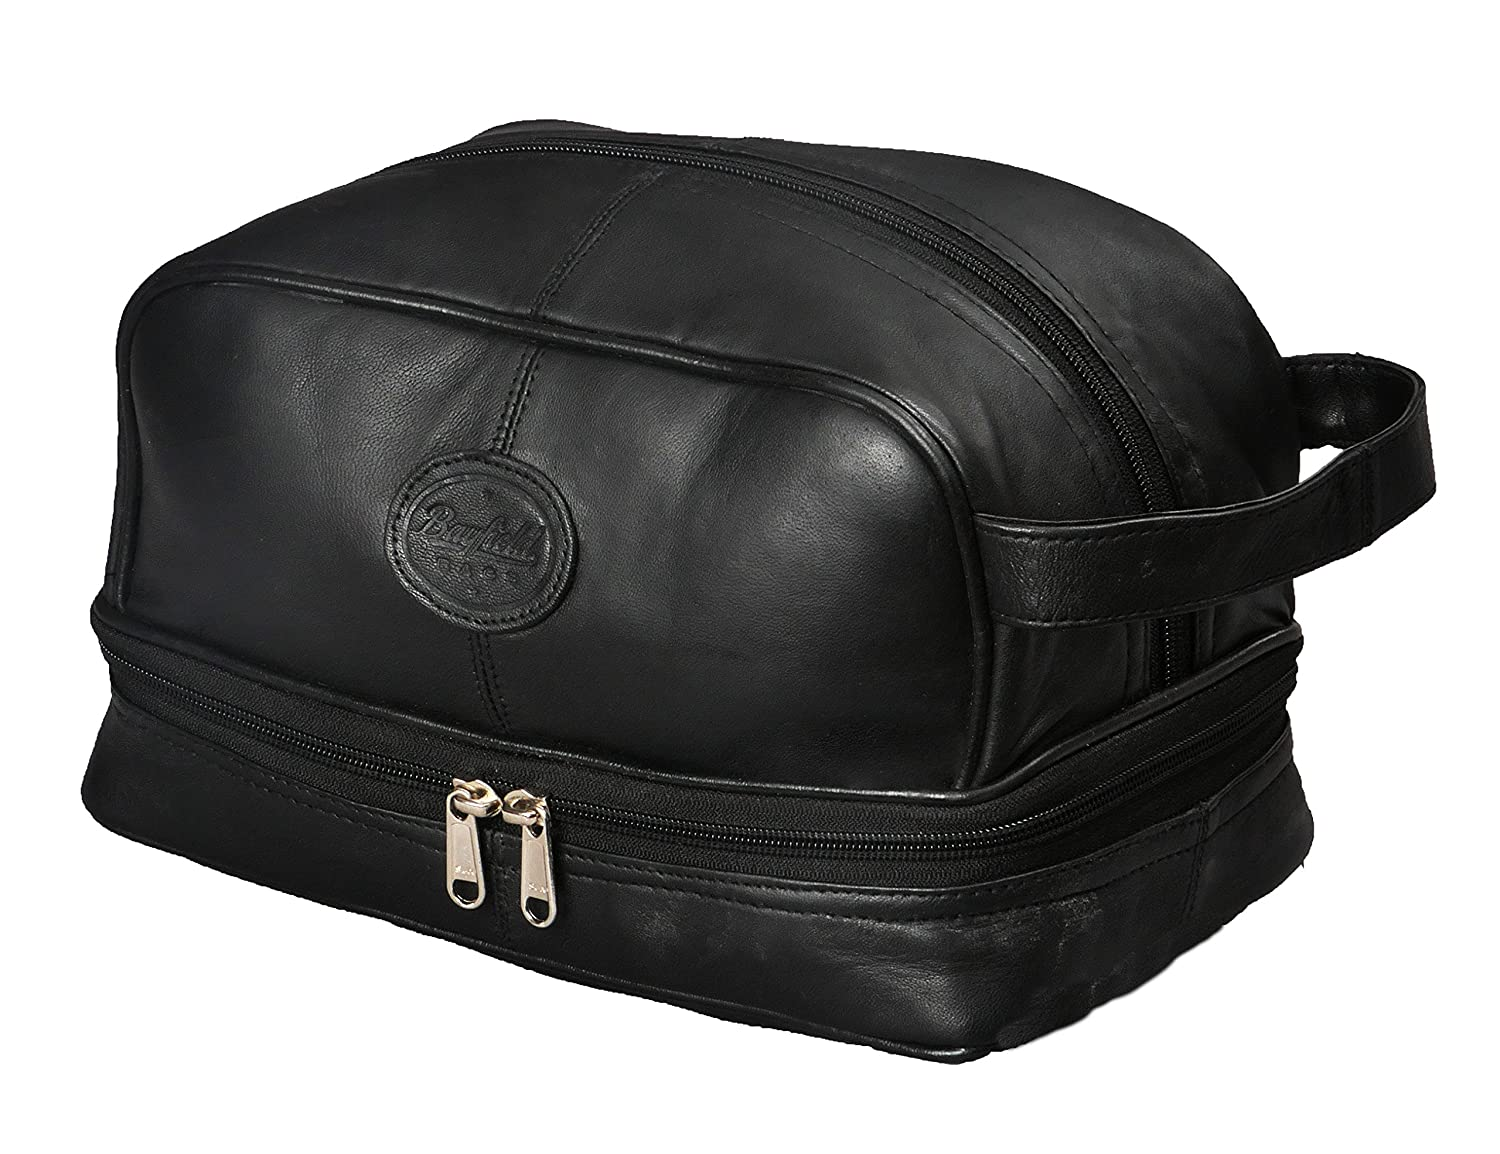 Mens Toiletry Bag Shaving Dopp Case For Travel by Bayfield Bags (Black) BLDB001